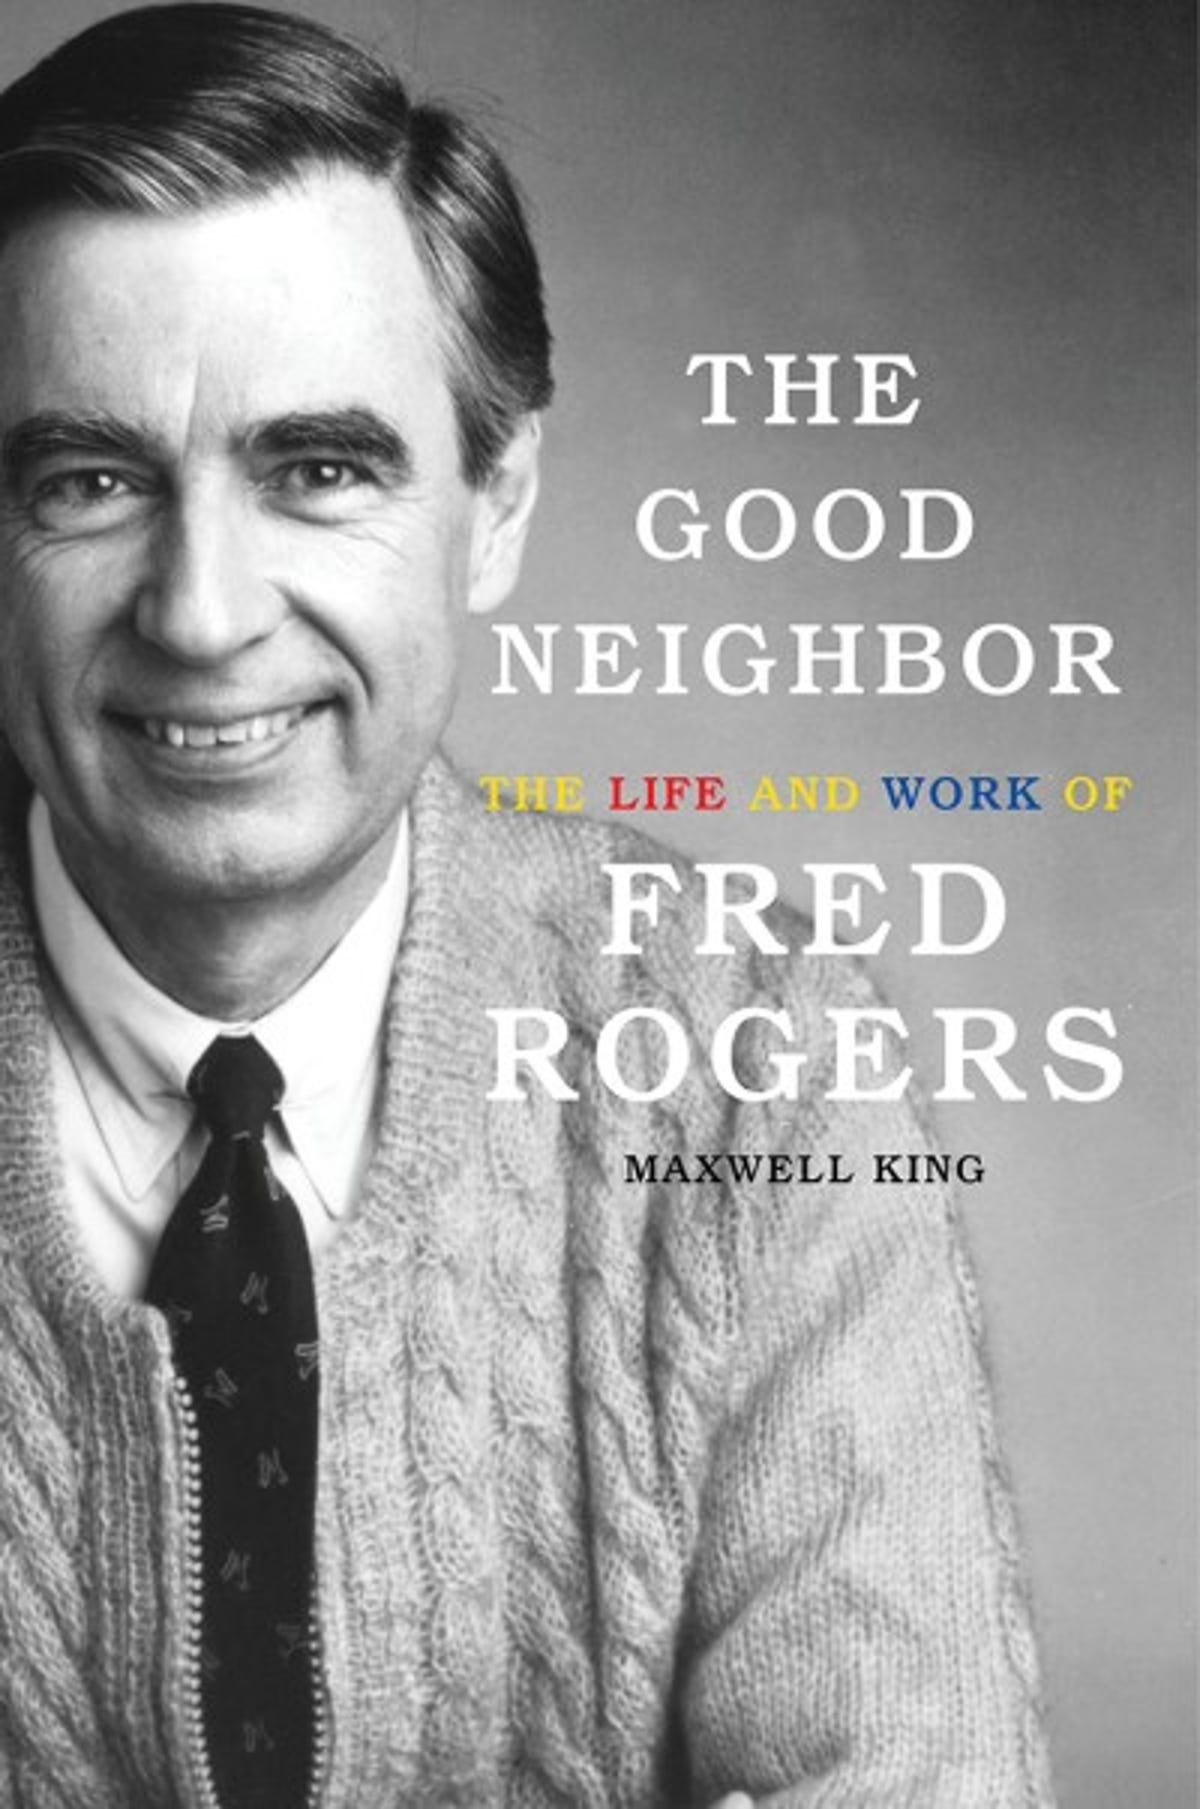 11 things you may not know about Fred Rogers from 'The Good